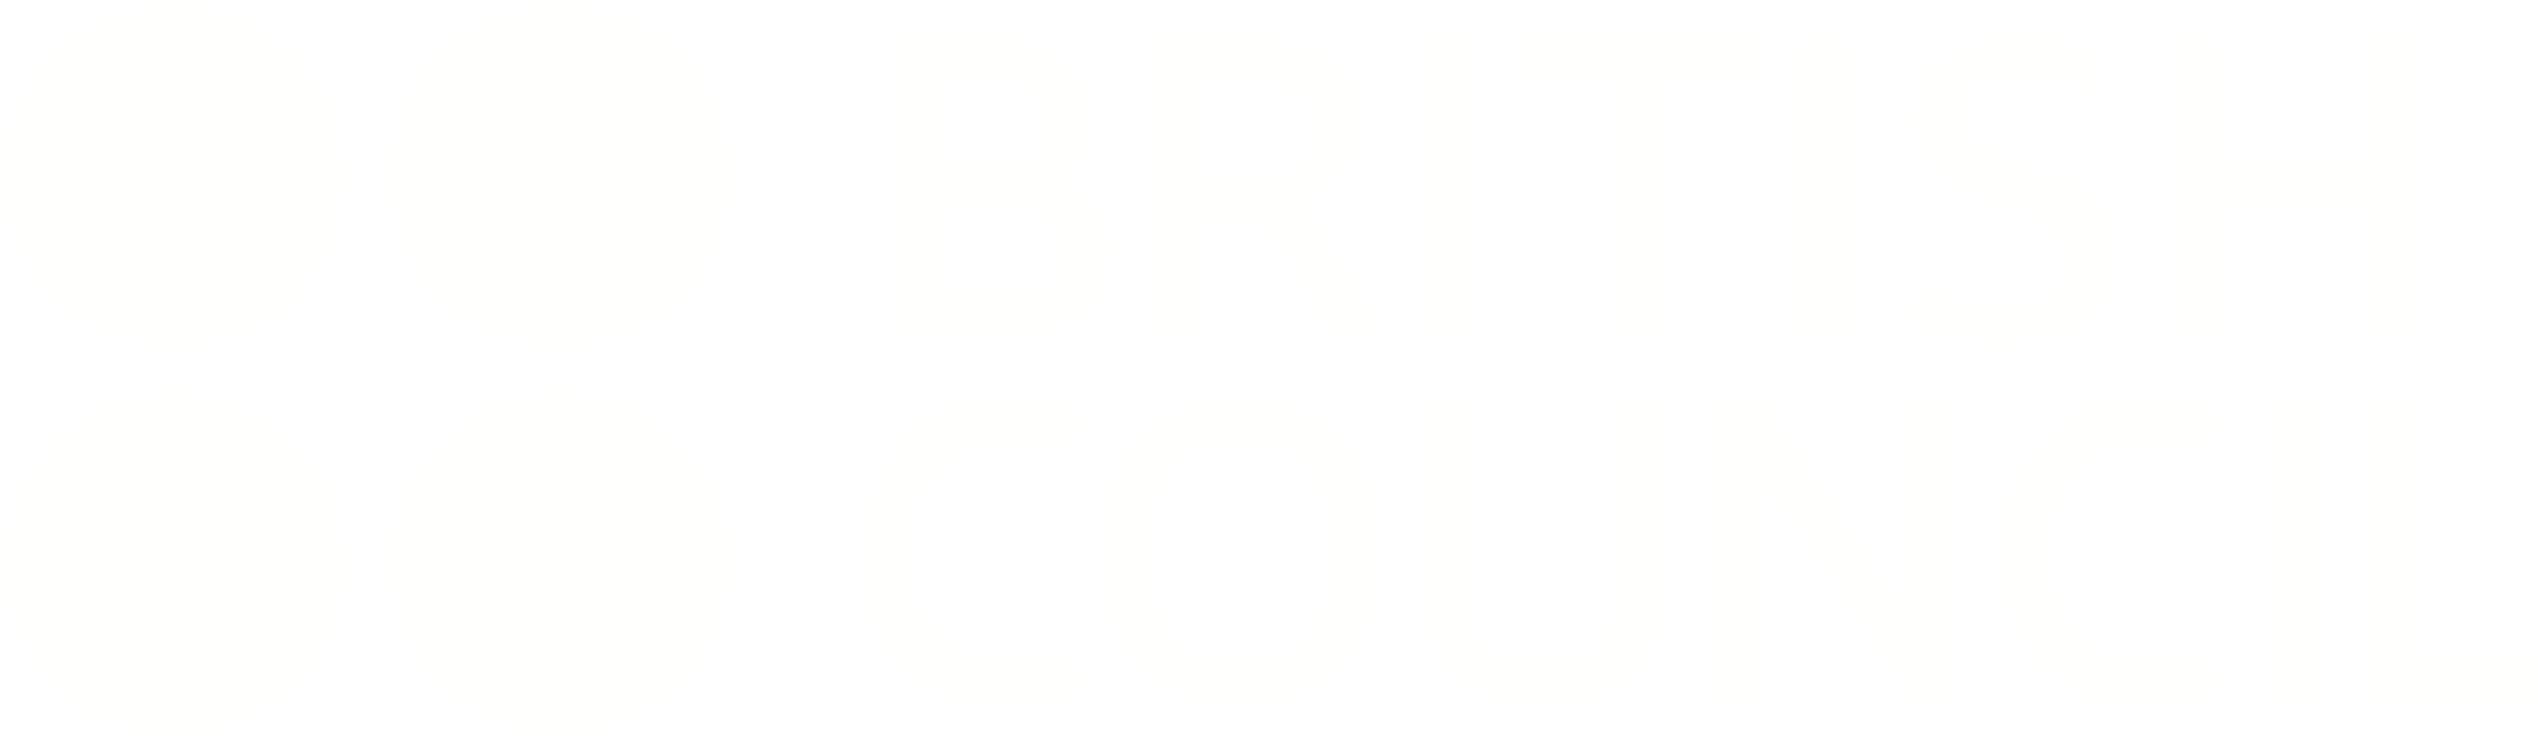 British Council white